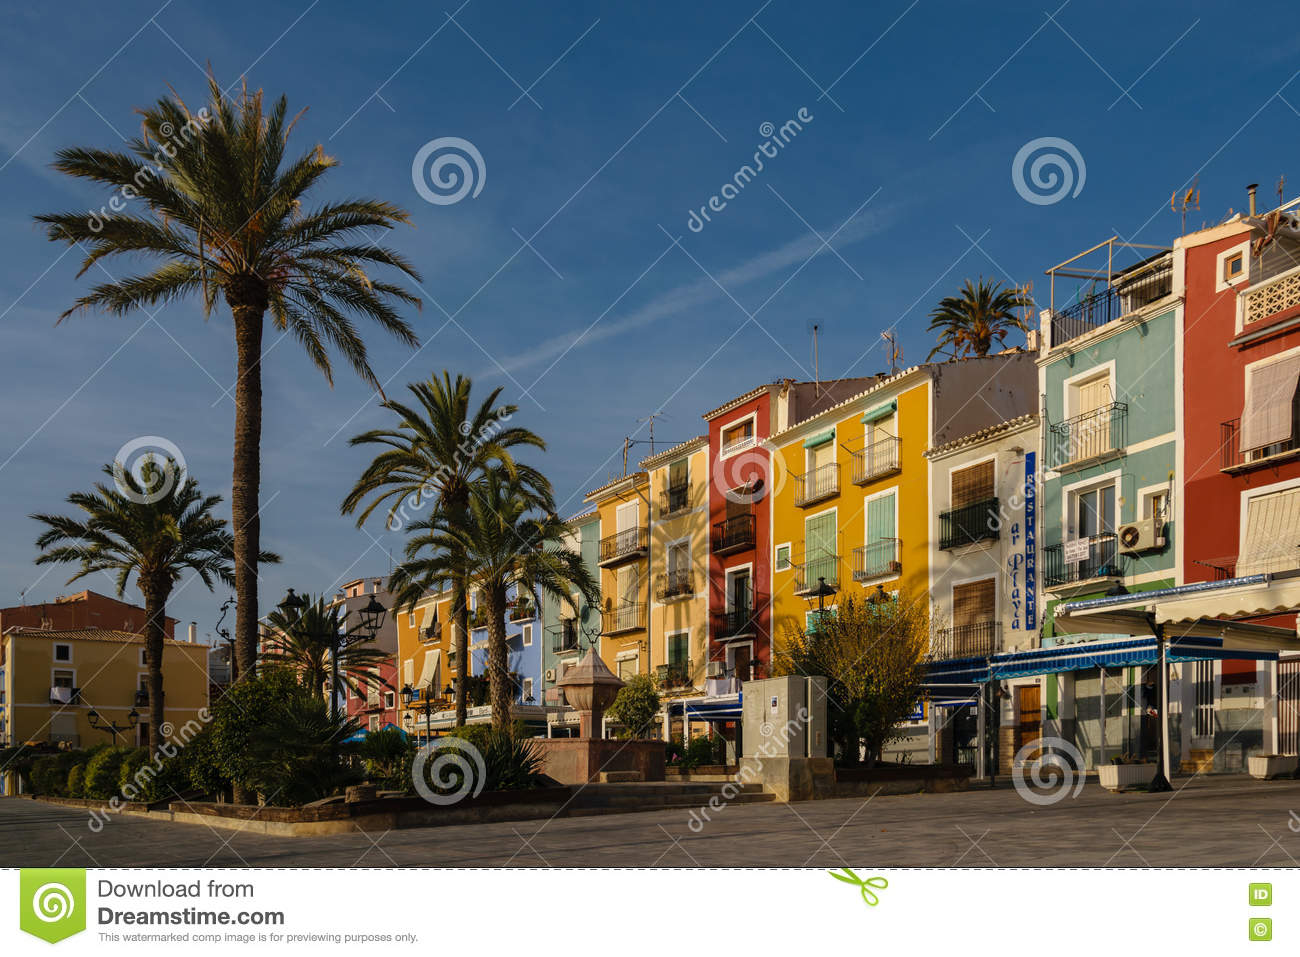 Villajoyosa Multicolored Houses And Palms, Spain Editorial Image.